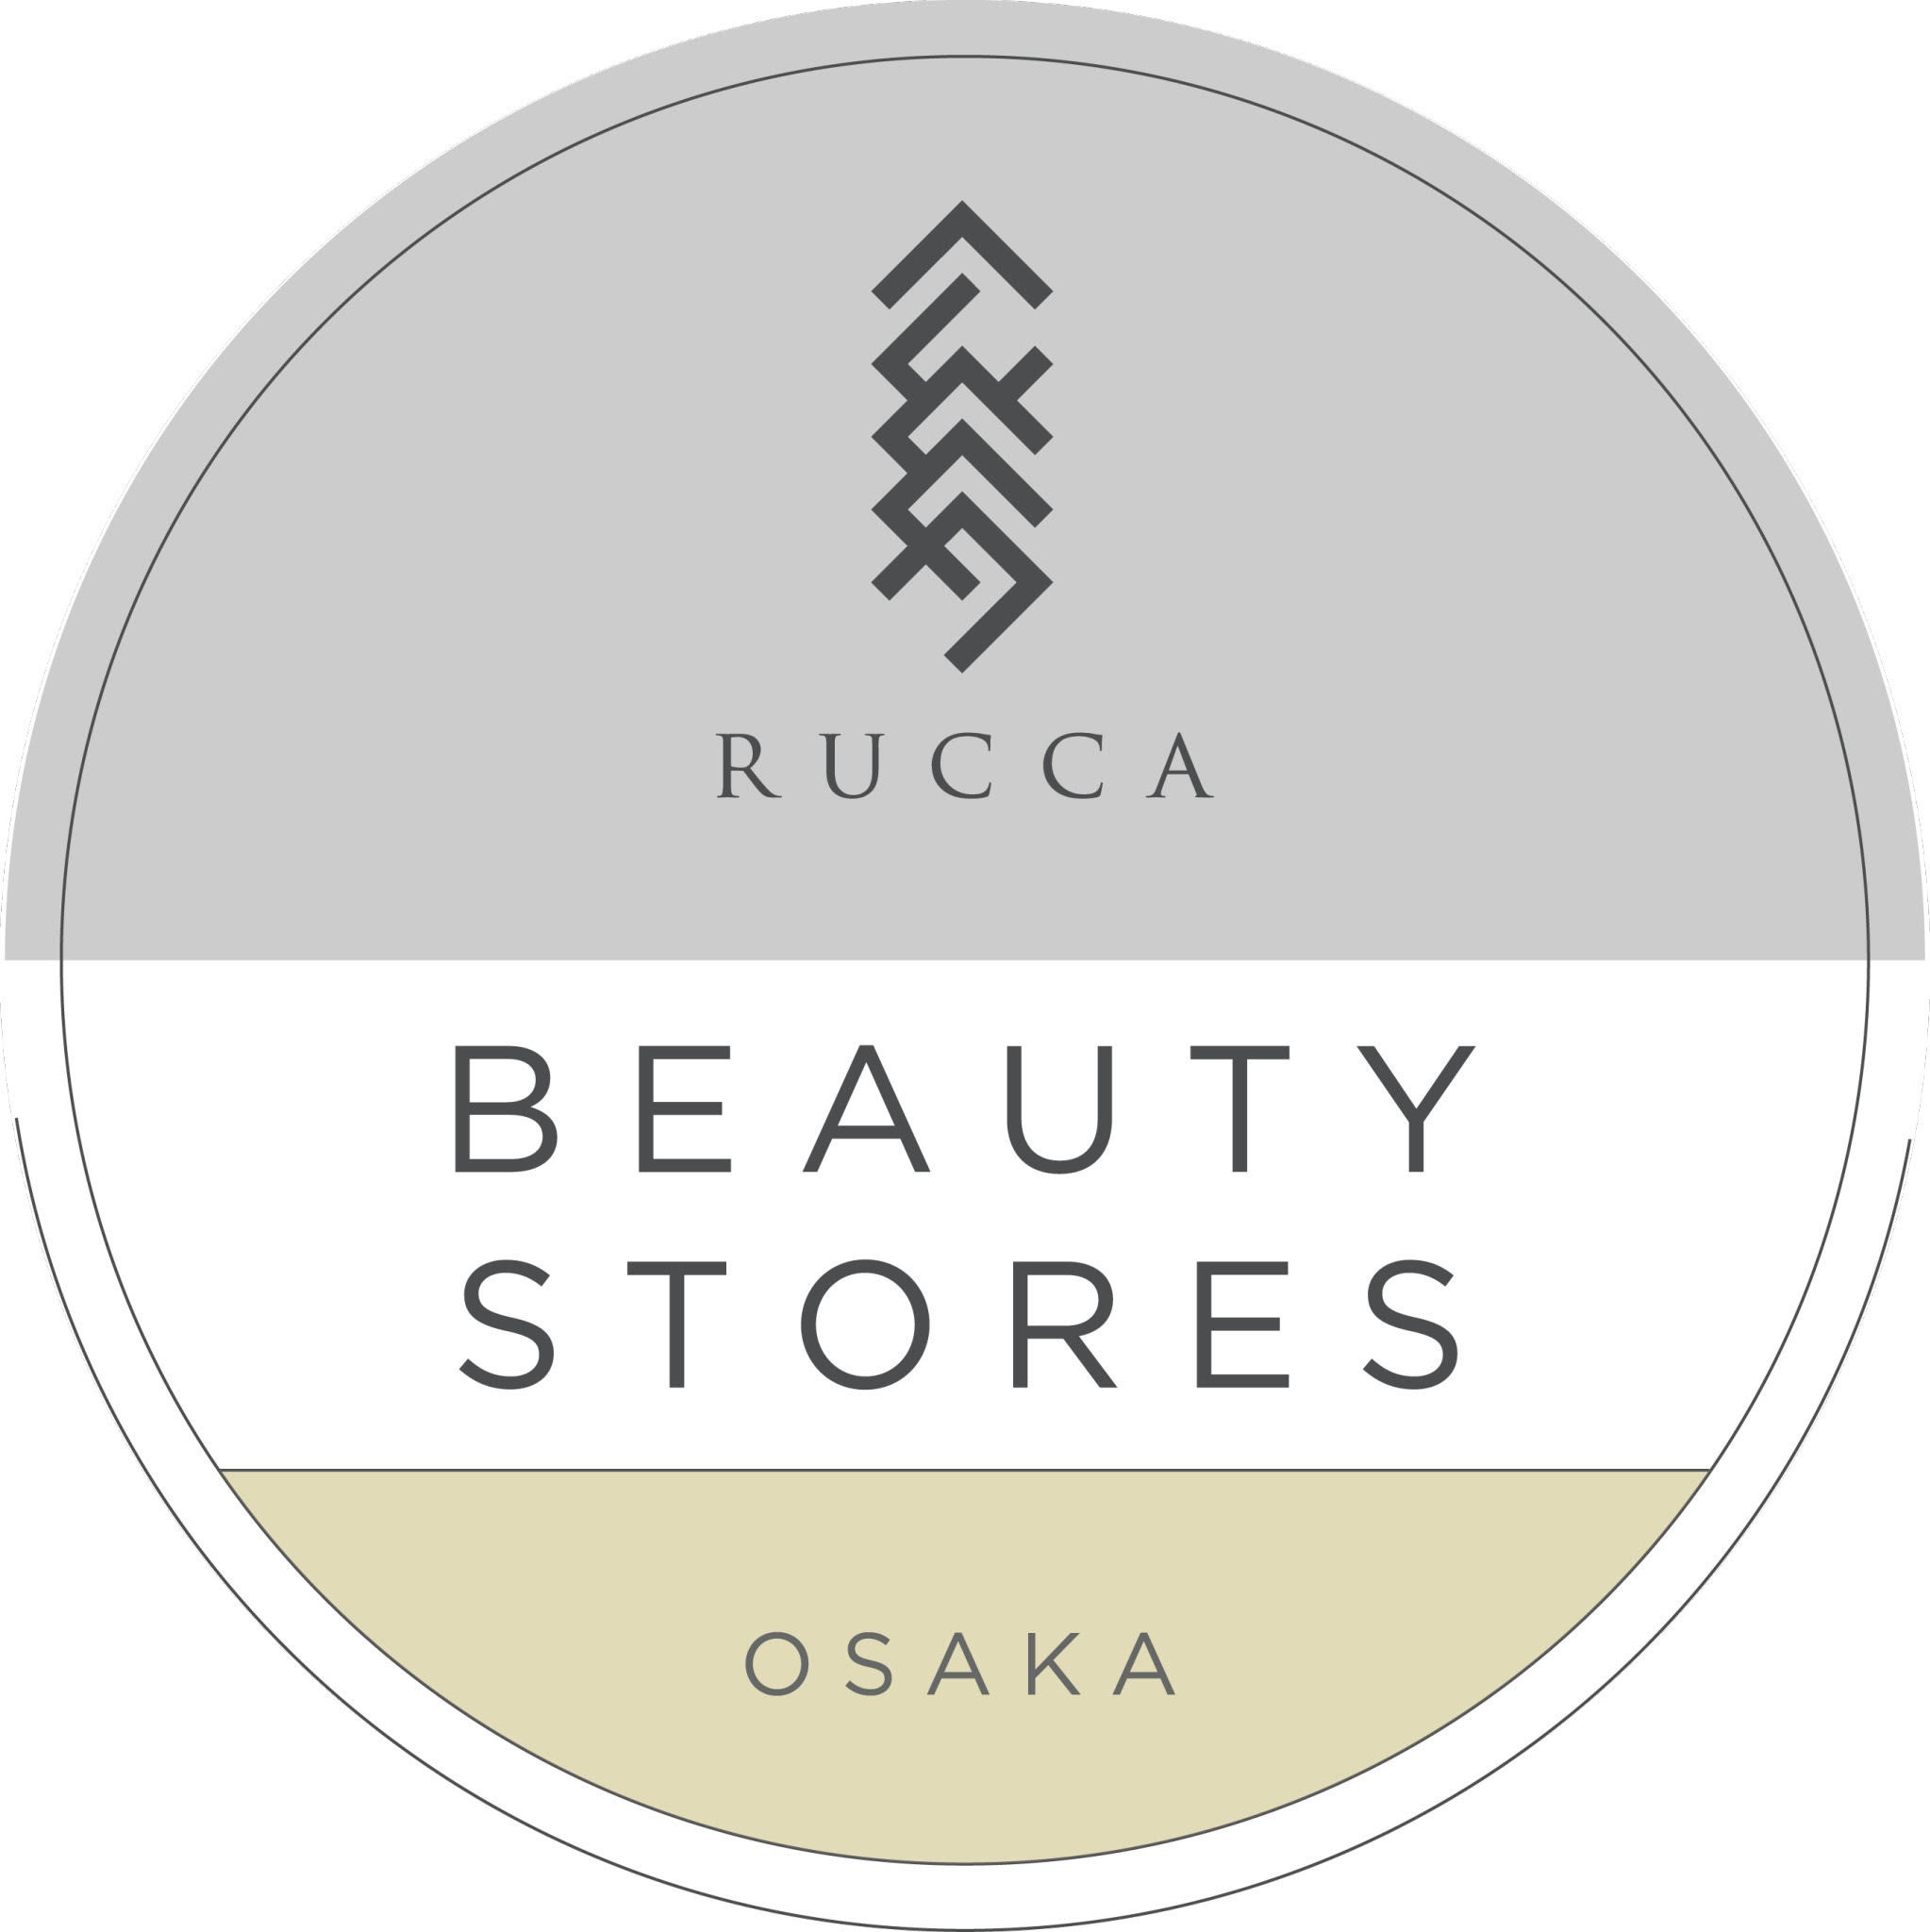 ruccagroup